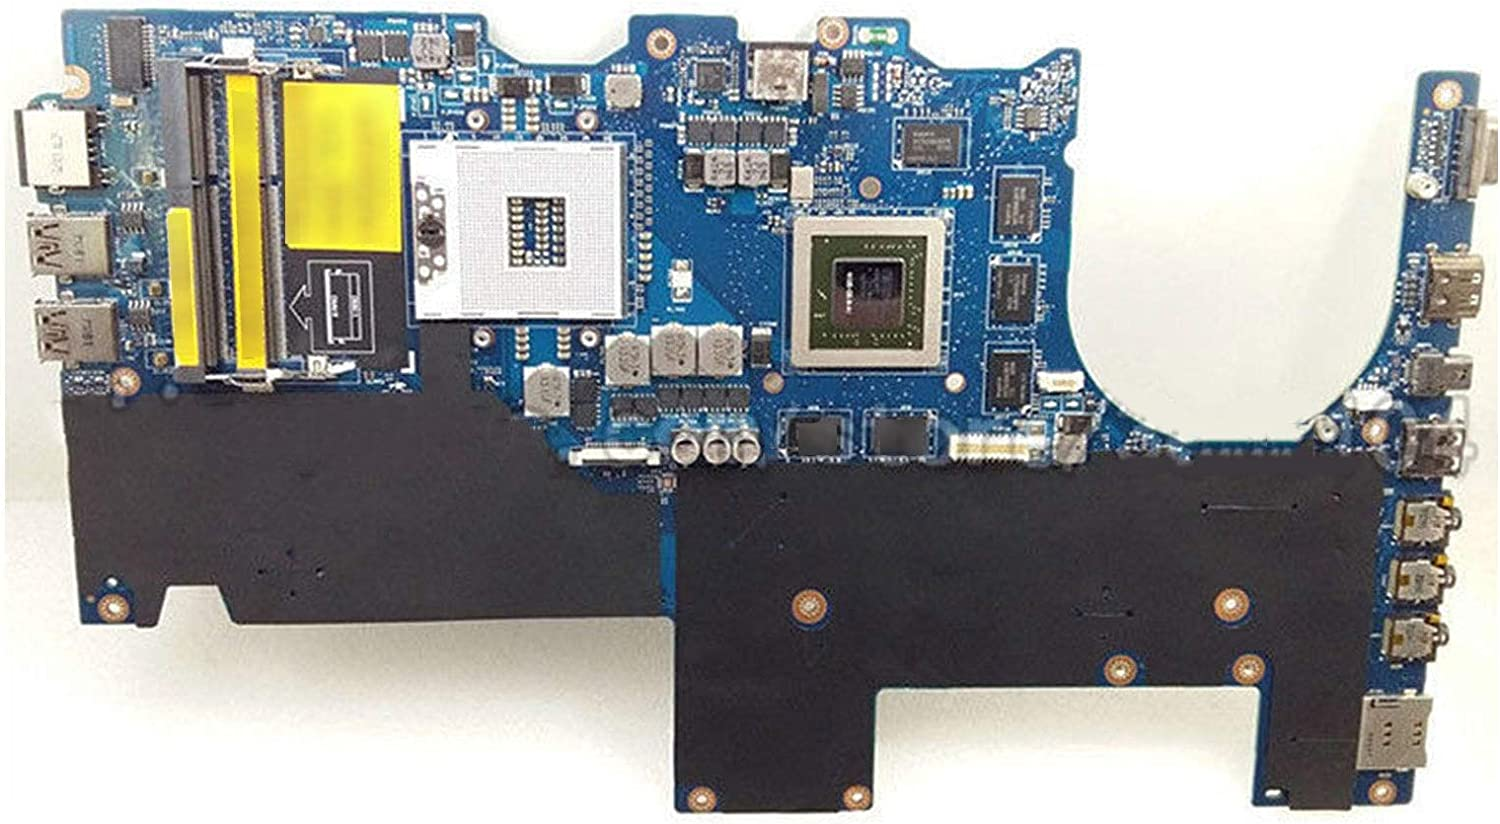 WSDSB Laptop Motherboard Fit latest for DELL R1 Notebook Alienware Max 80% OFF M14X